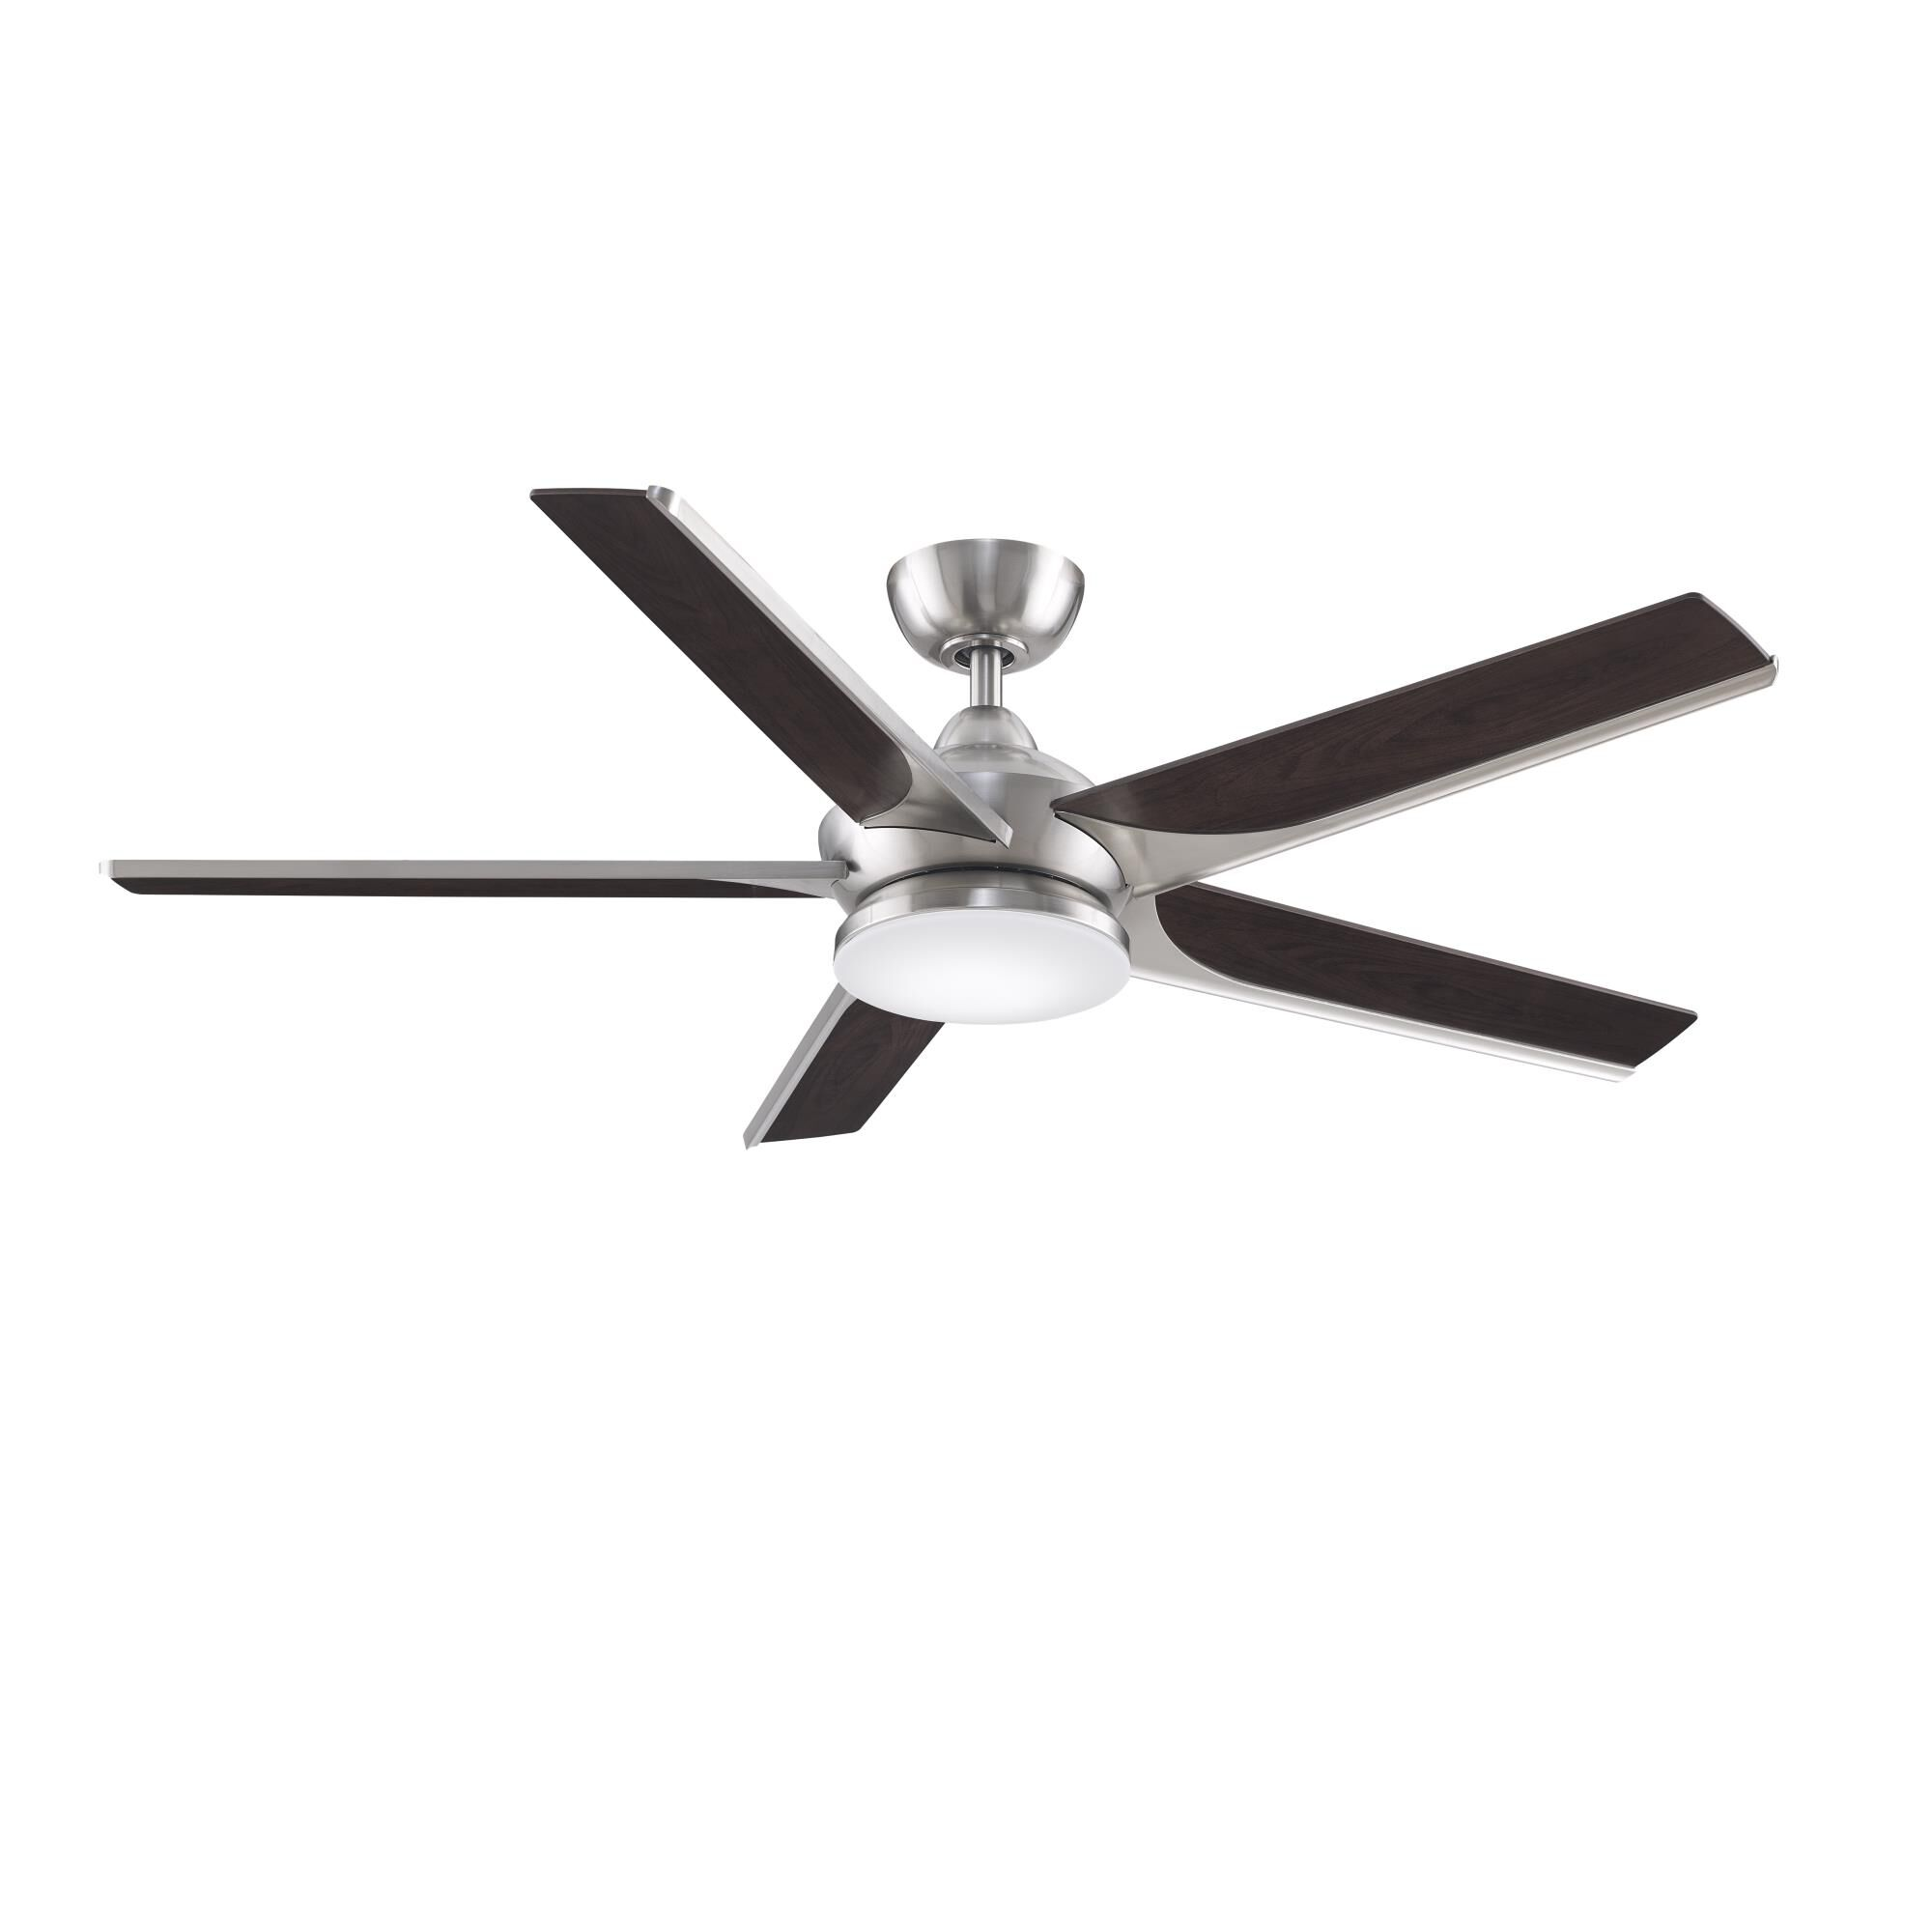 Beckwith 12 Inch Ceiling Fan With Light Kit Capitol Lighting